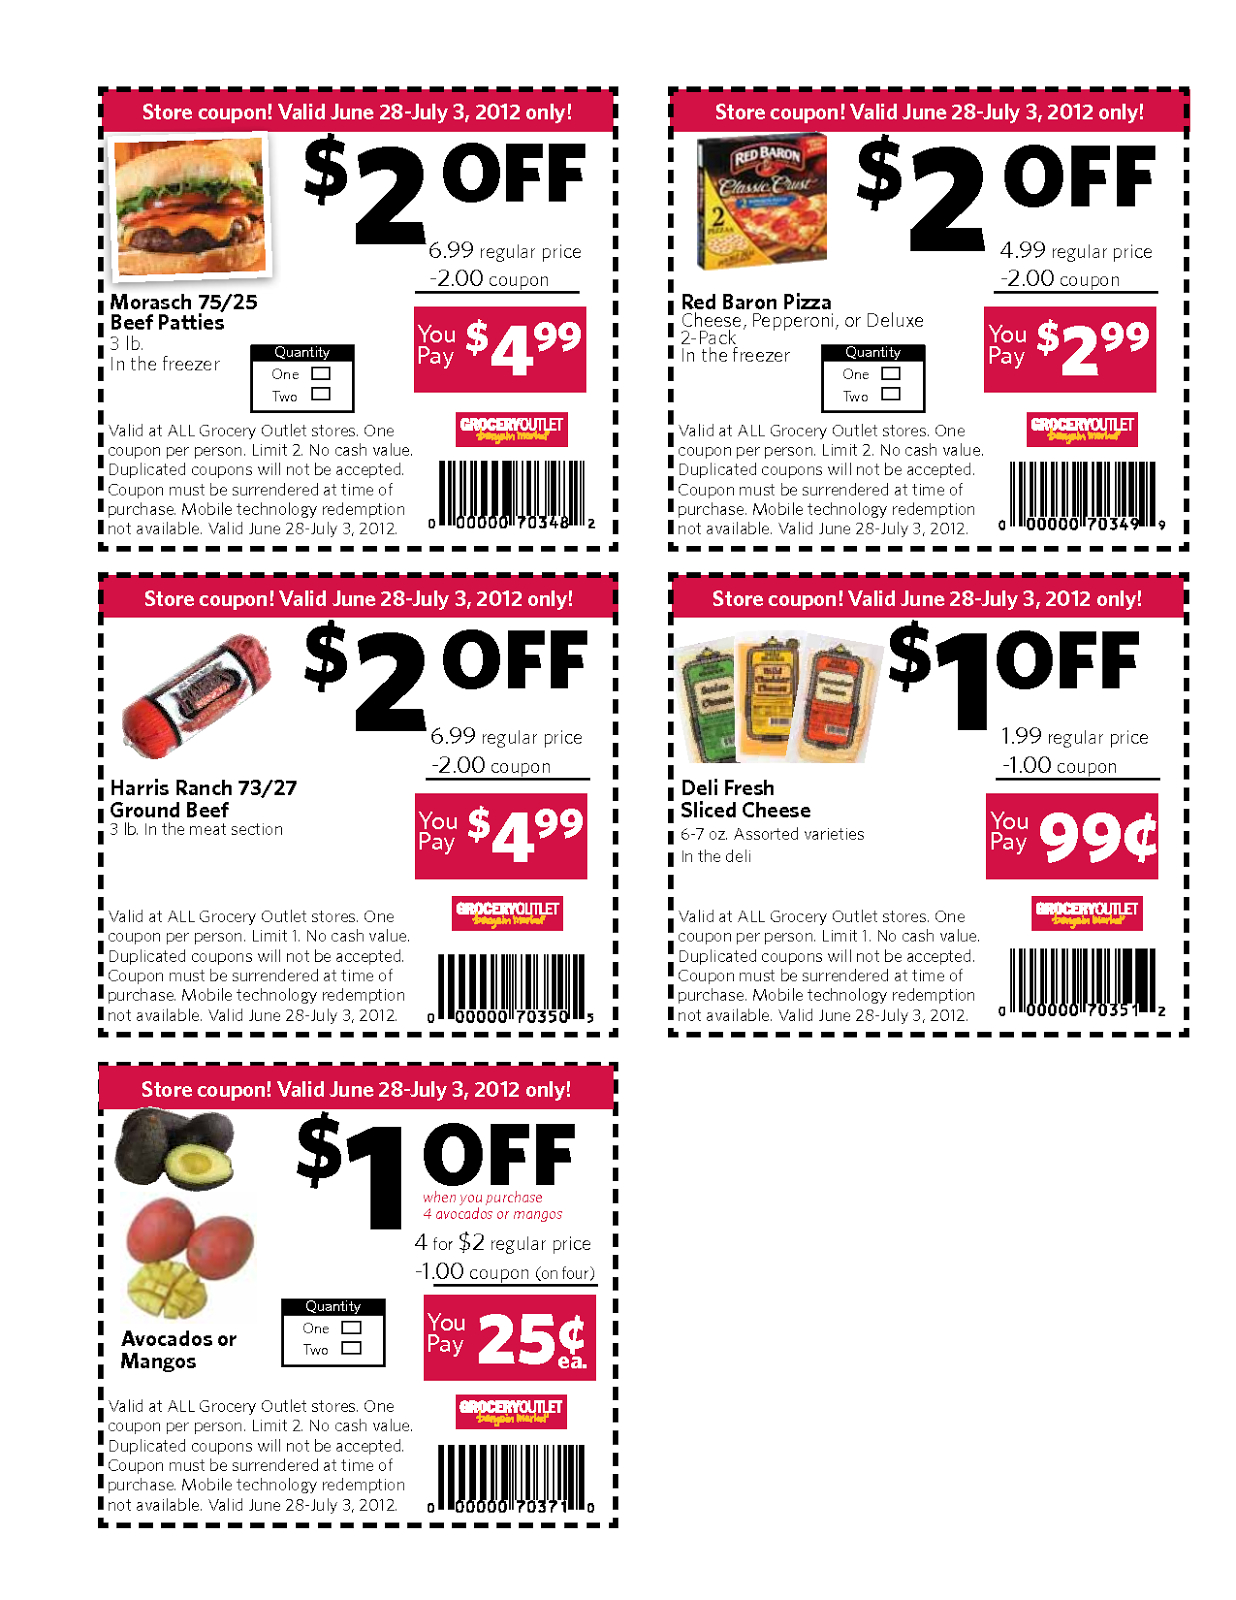 Free Coupons Printable Grocery : Pizza Hut Factoria - Free Printable Grocery Coupons